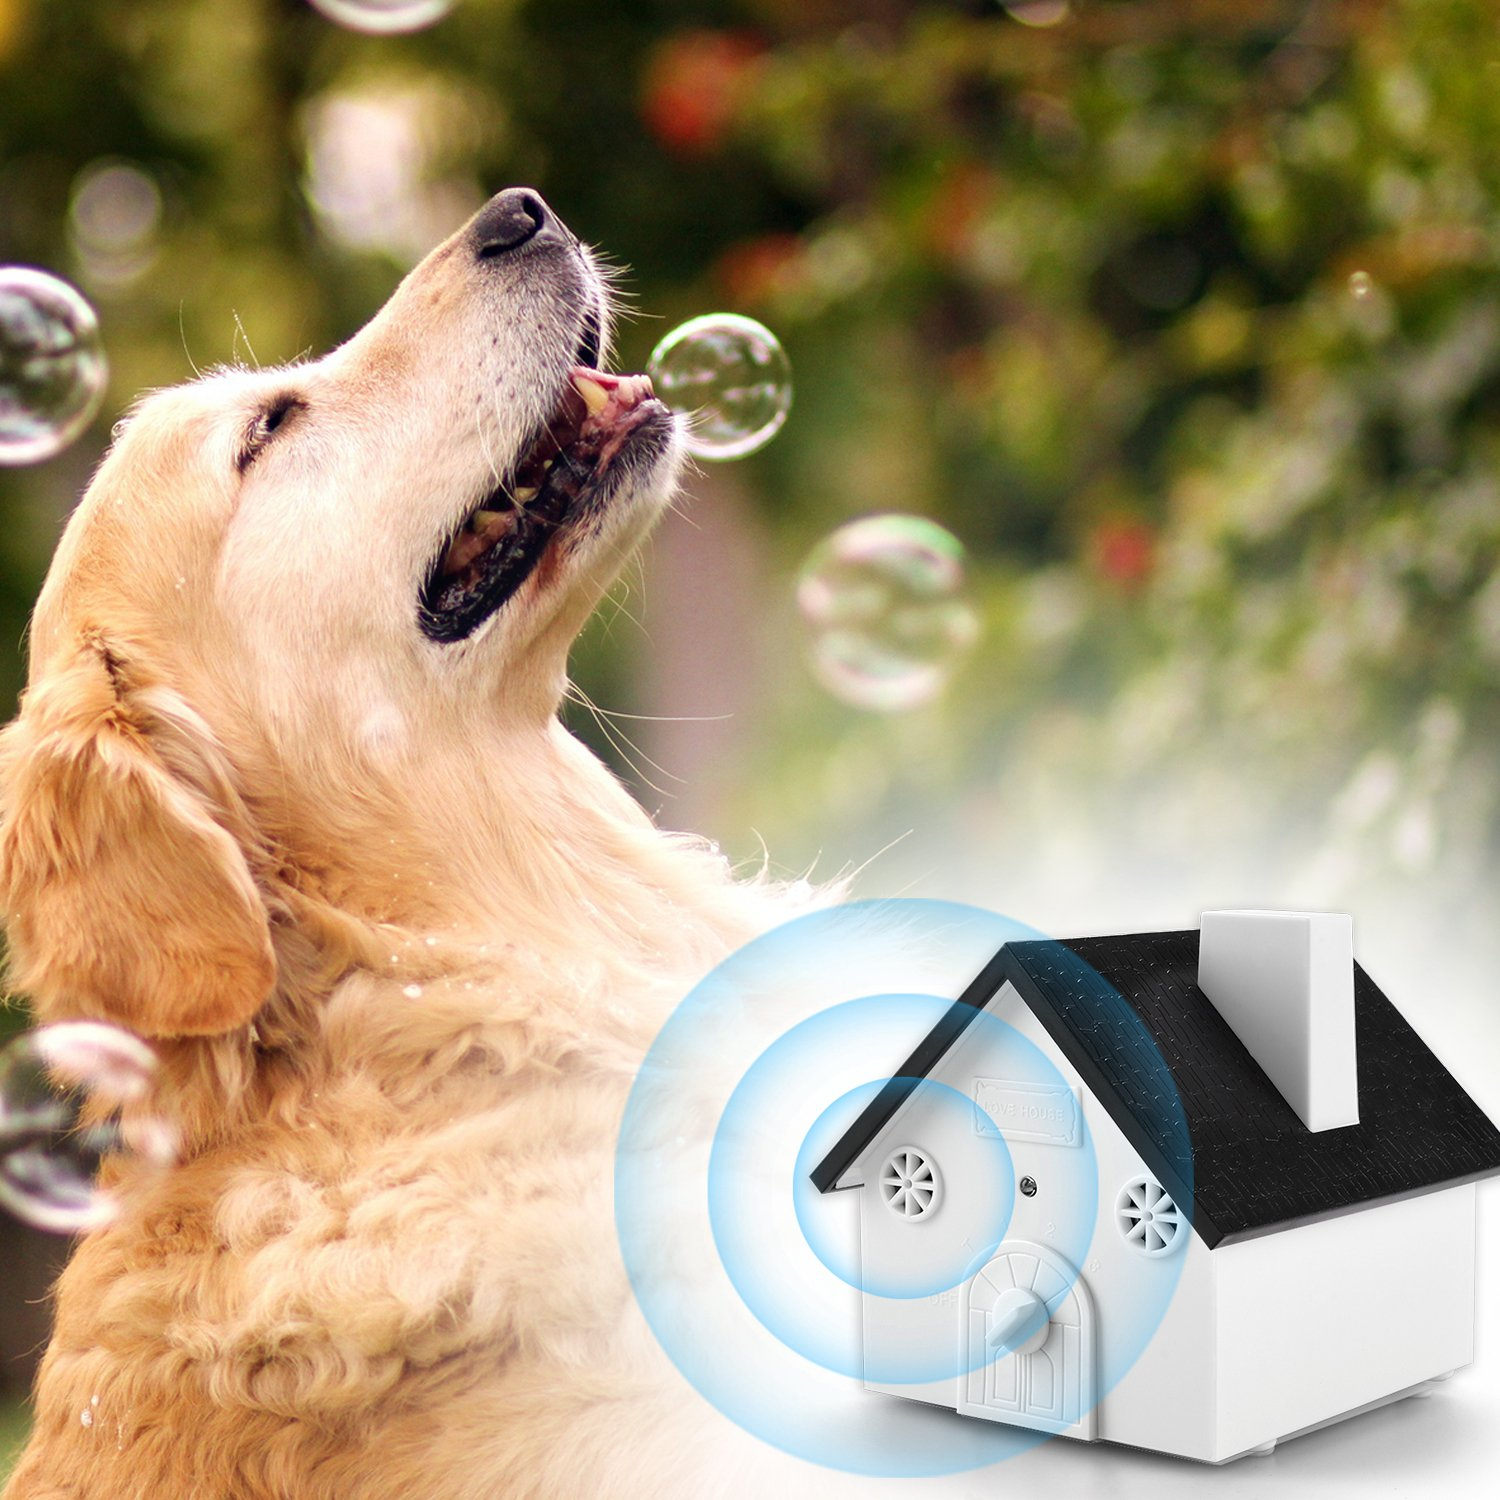 Homitem Ultrasonic Outdoor Bark Controller Anti-barking Devices Sonic Bark Deterrent by, No Harm To Dogs or other Pets,Plant,Human,Easy Hanging/Mounting,3 Modes,Birdhouse Shaped(White) by Homitem (Image #2)